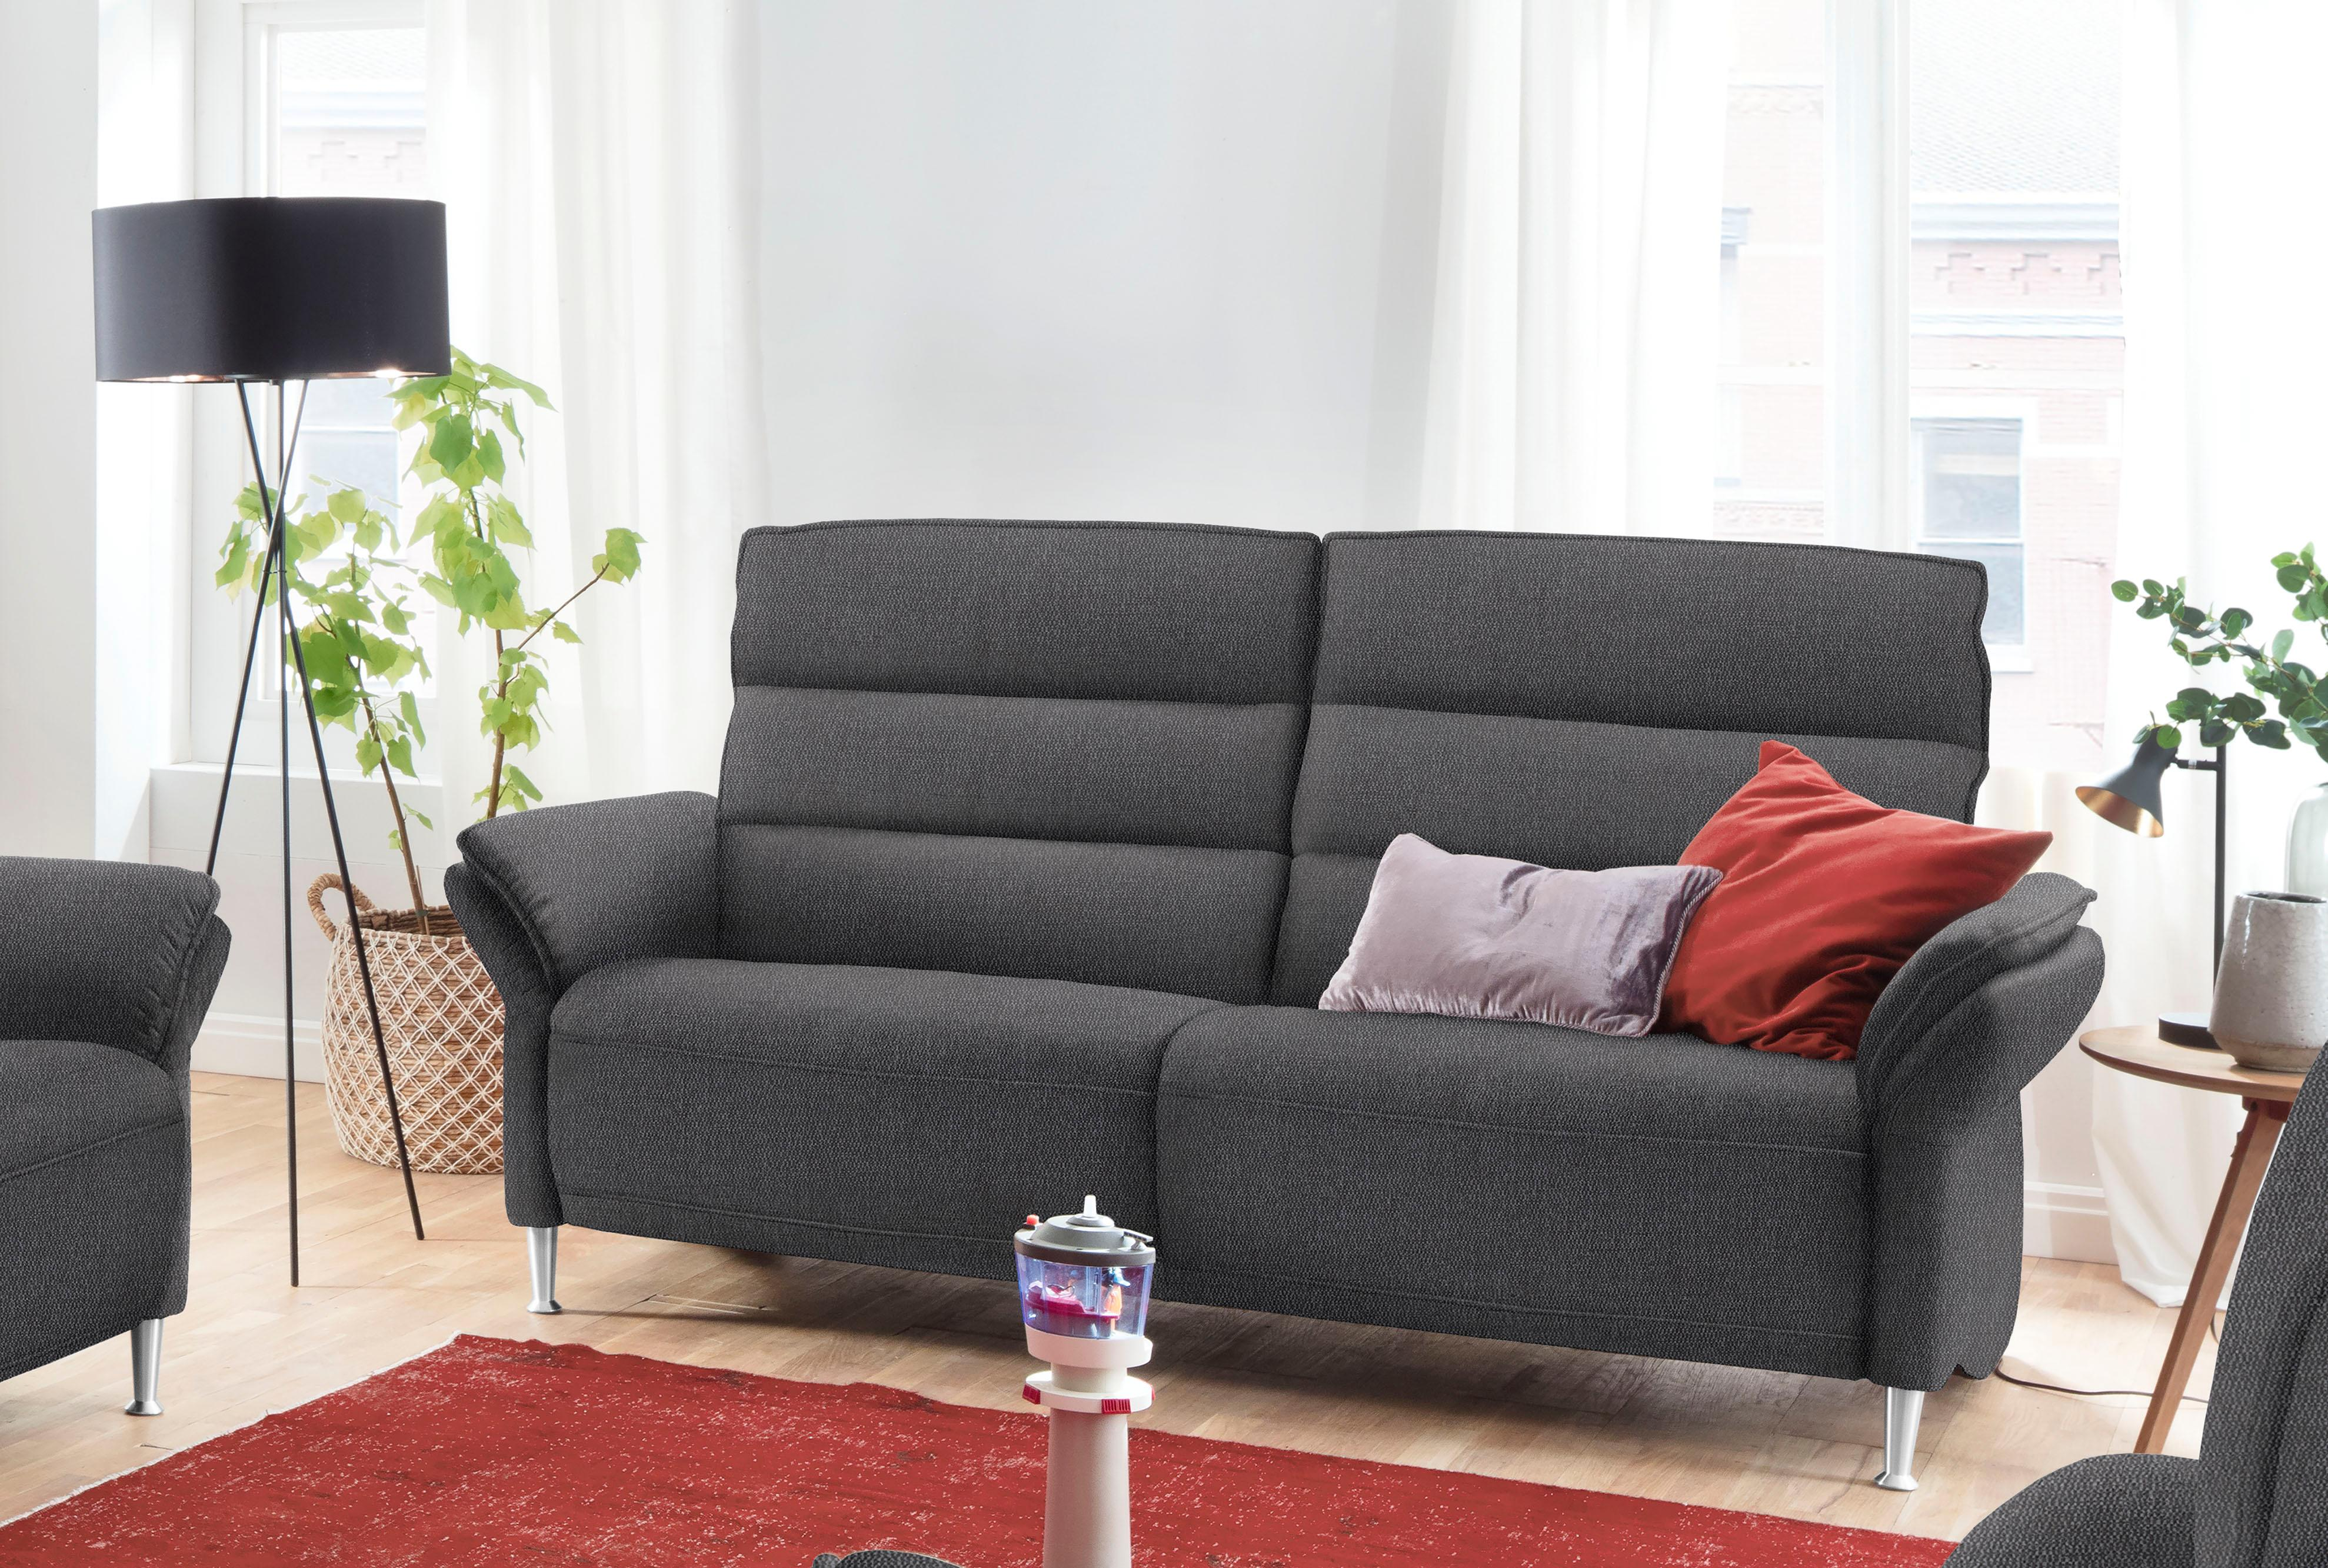 Places of Style 3-Sitzer »Dover«   Wohnzimmer > Sofas & Couches > 2 & 3 Sitzer Sofas   PLACES OF STYLE